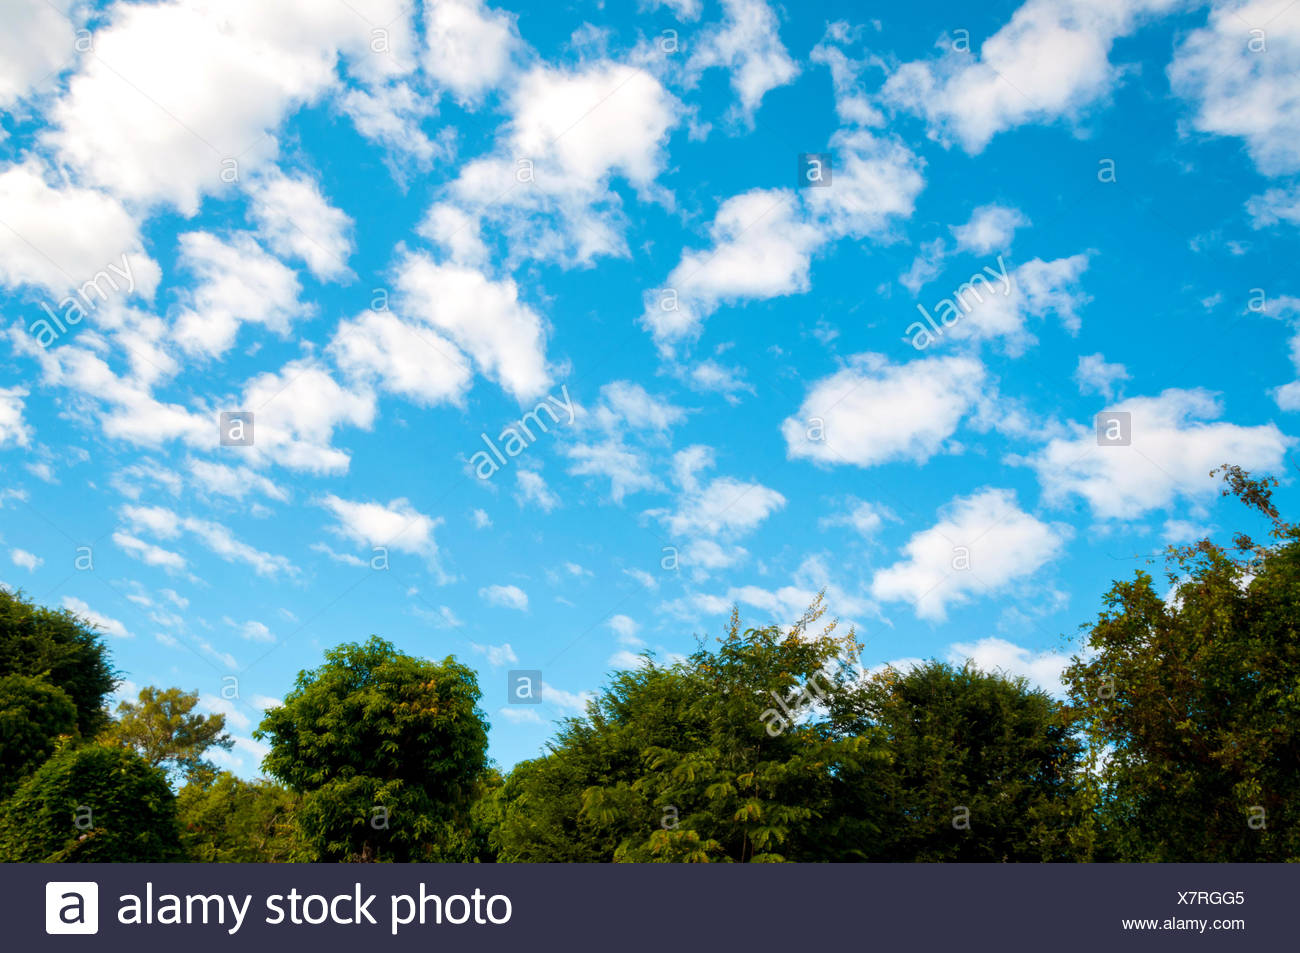 White Clouds and Blue Sky - Stock Image